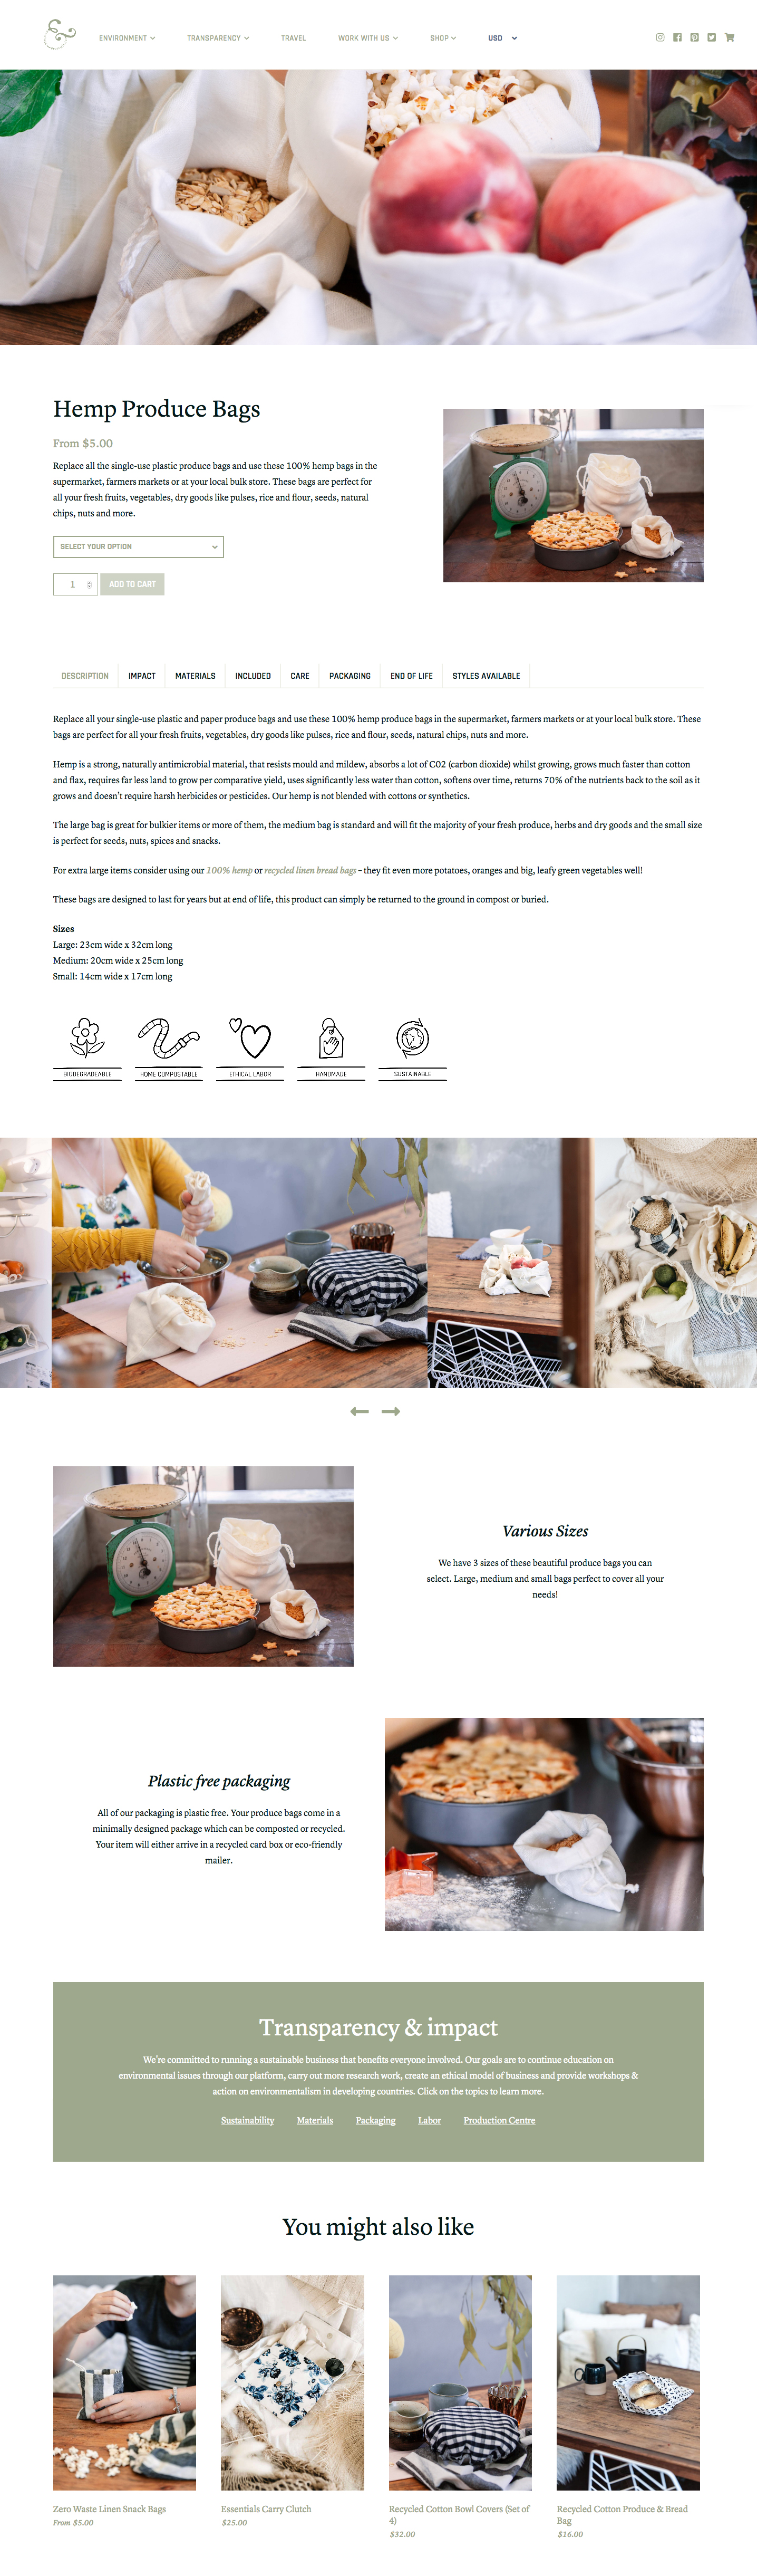 Nowhere & Everywhere Identity Division Website Ecommerce Design & Developing Blog Design Product Development Shop